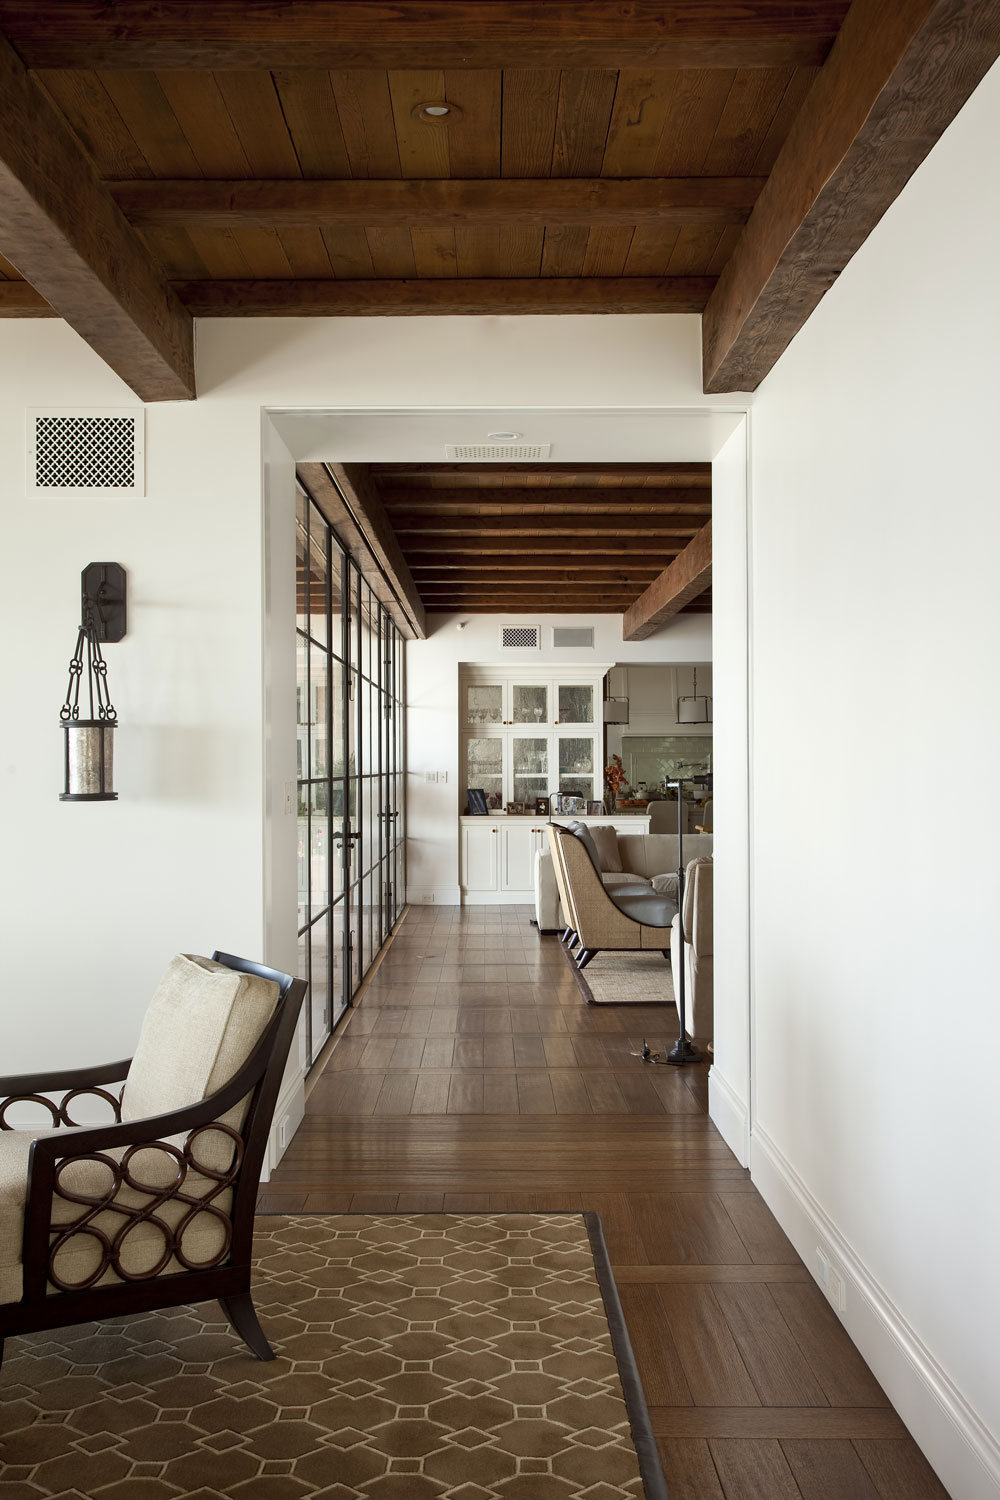 Modern-Spanish-Wood-Floor-Tongue-Groove-Beamed-Ceiling-Wall-of-Windows-Corbin-Reeves.jpg